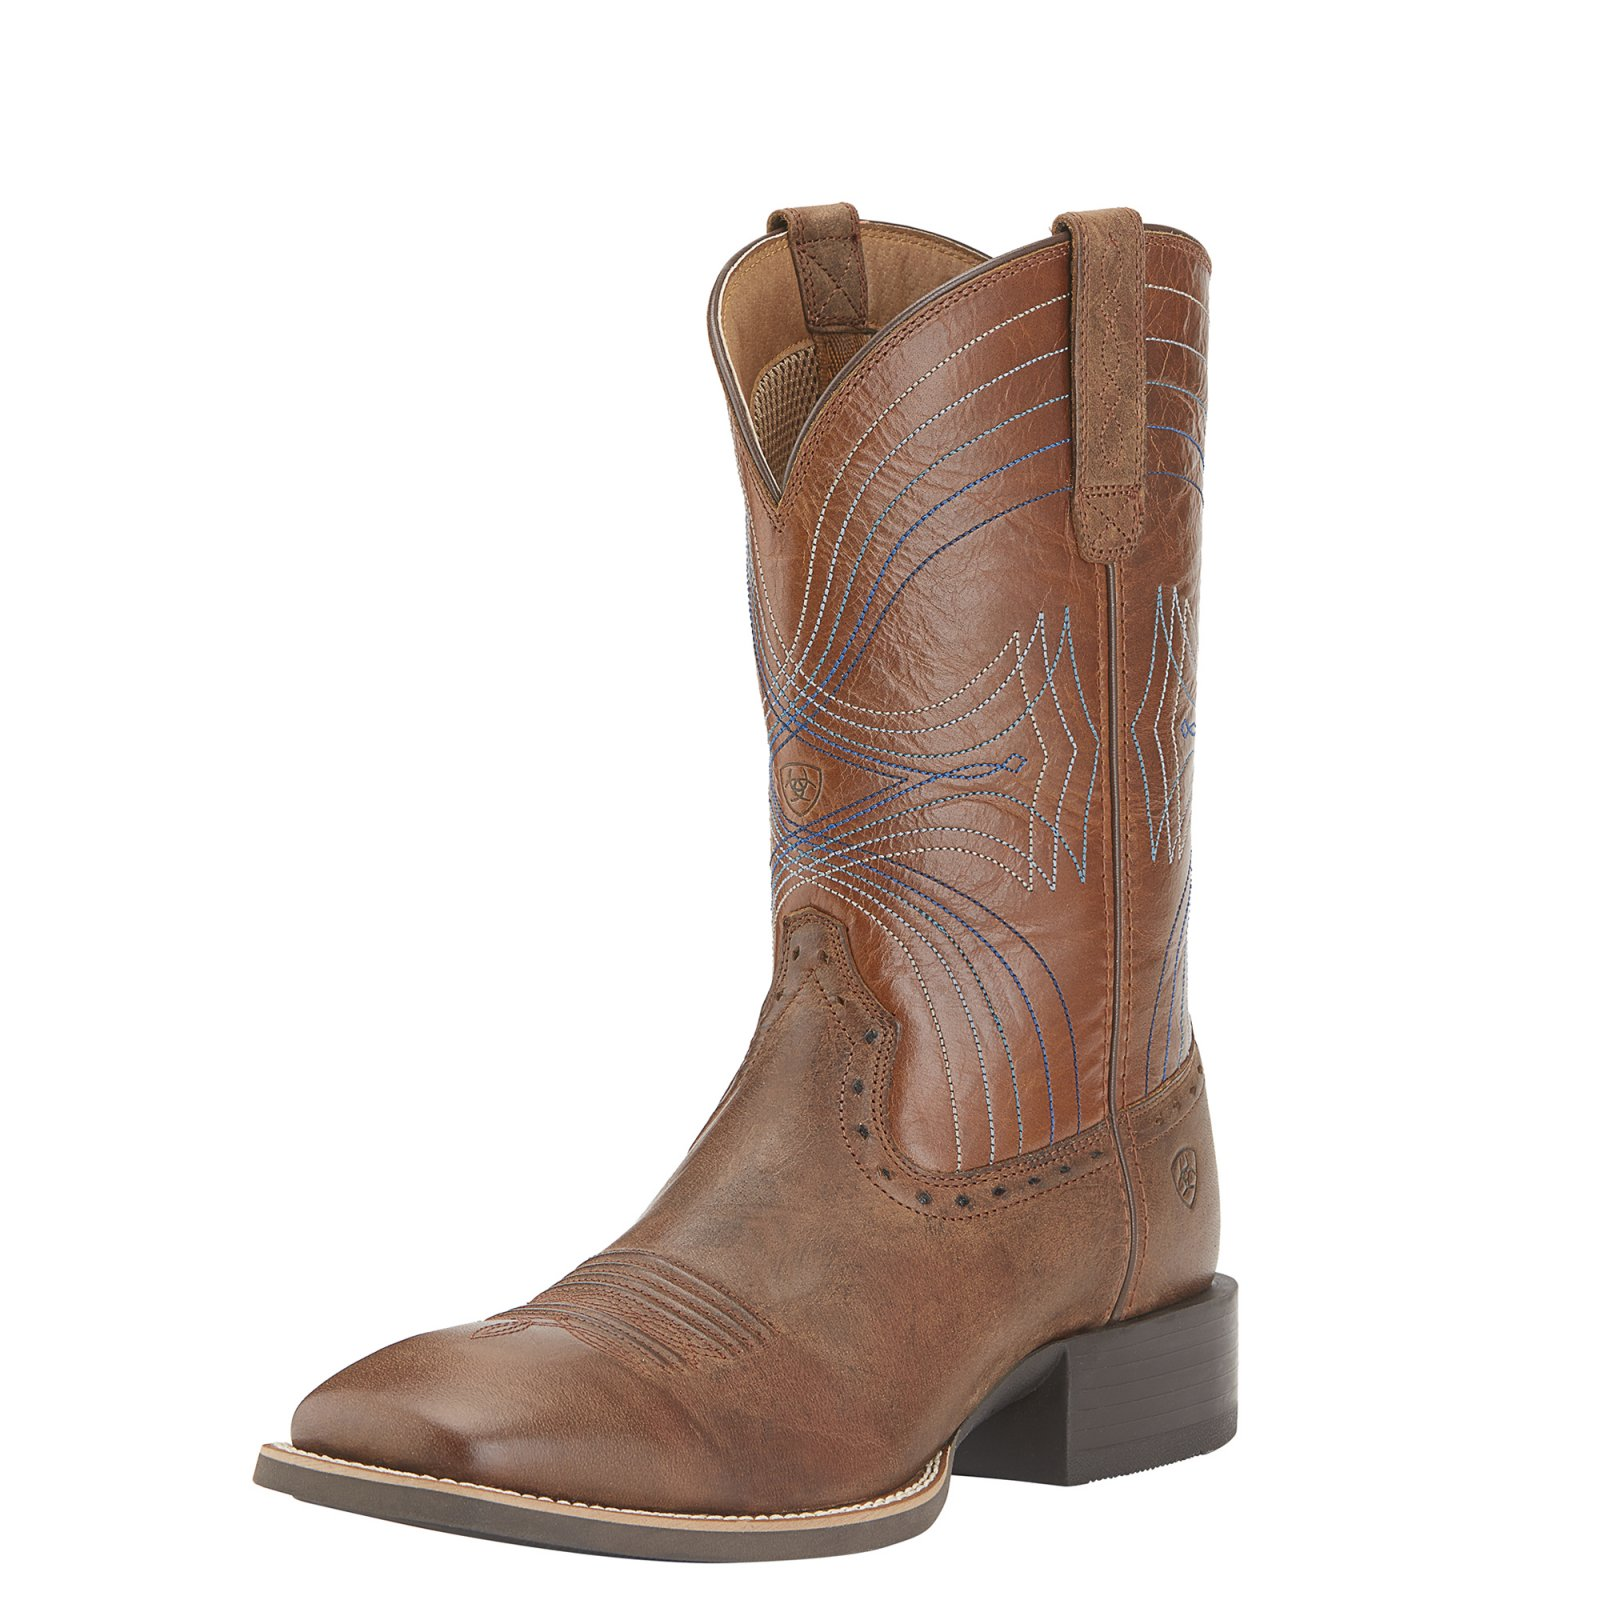 Sport Western from Ariat